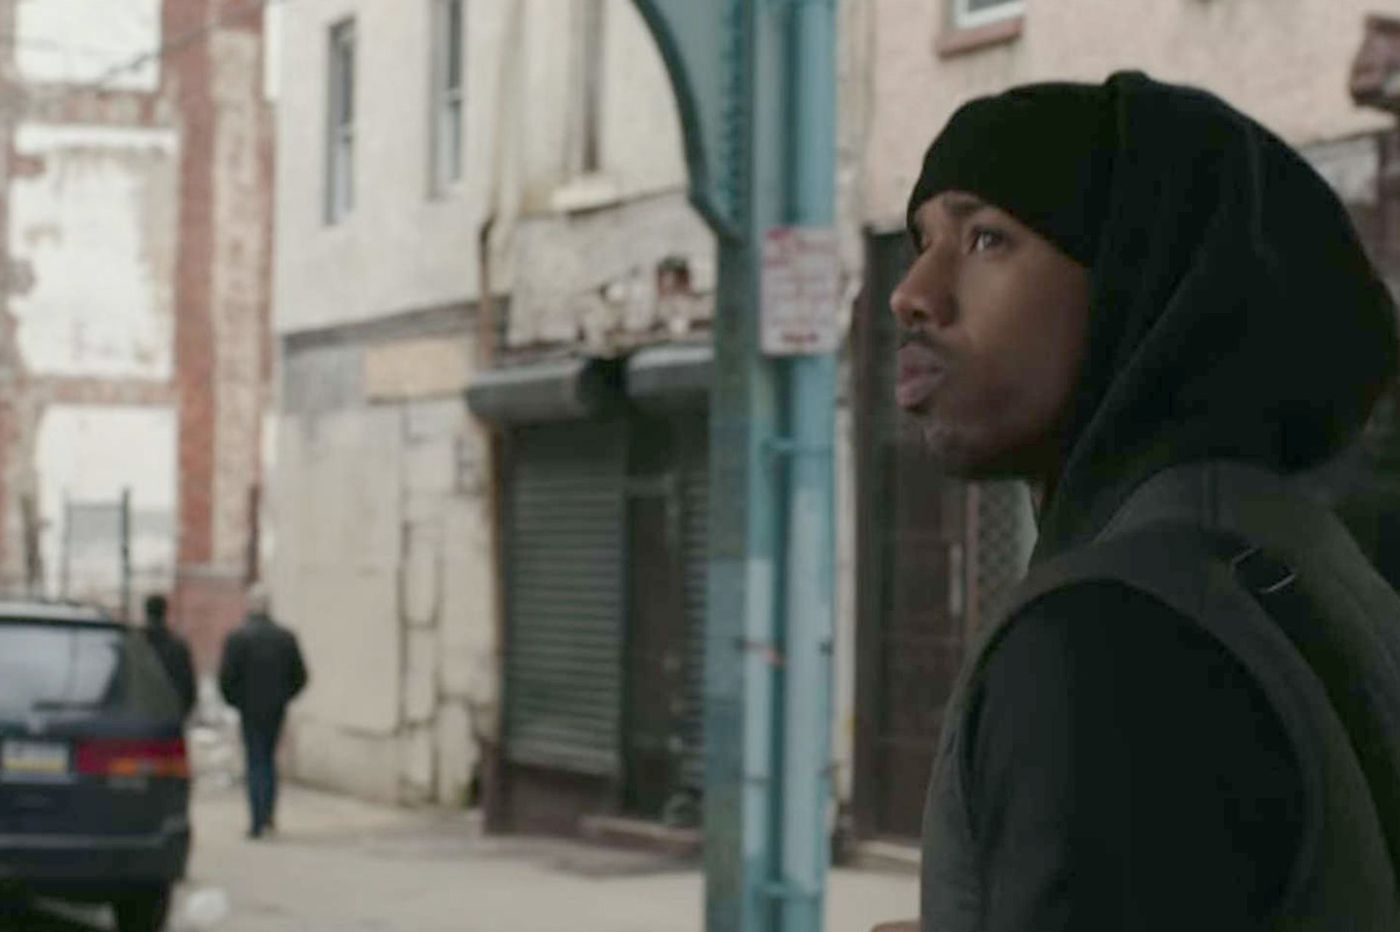 'Creed' stays true to Rocky's real city